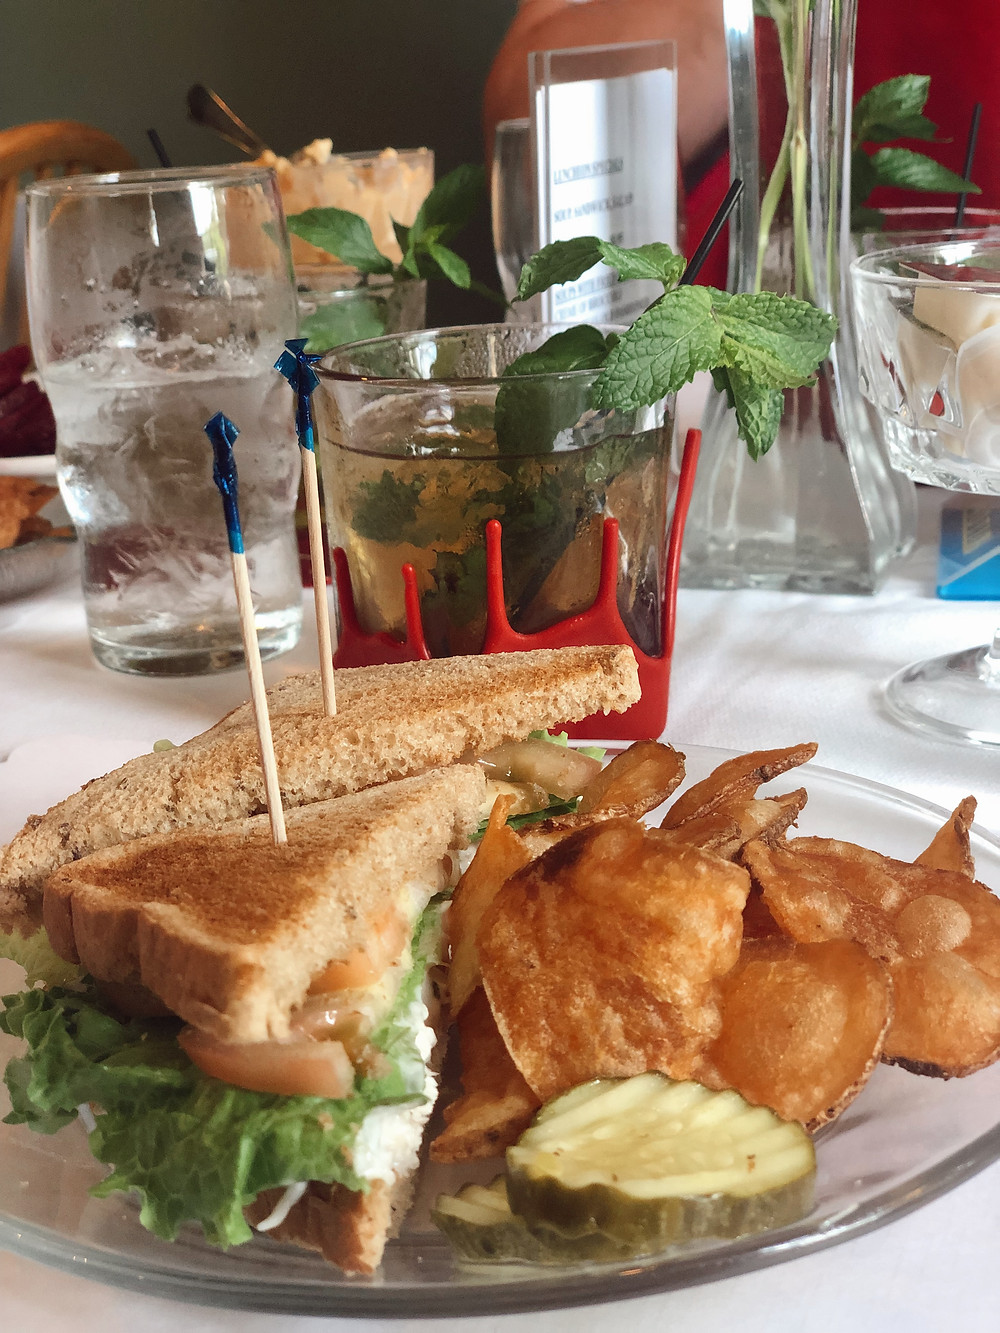 Chicken salad sandwich and Maker's Mark mint julep at Kurtz restaurant in Bardstown Kentucky, Bourbon Trail travel guide, where to eat in Bardstown, best restaurants, travel blog